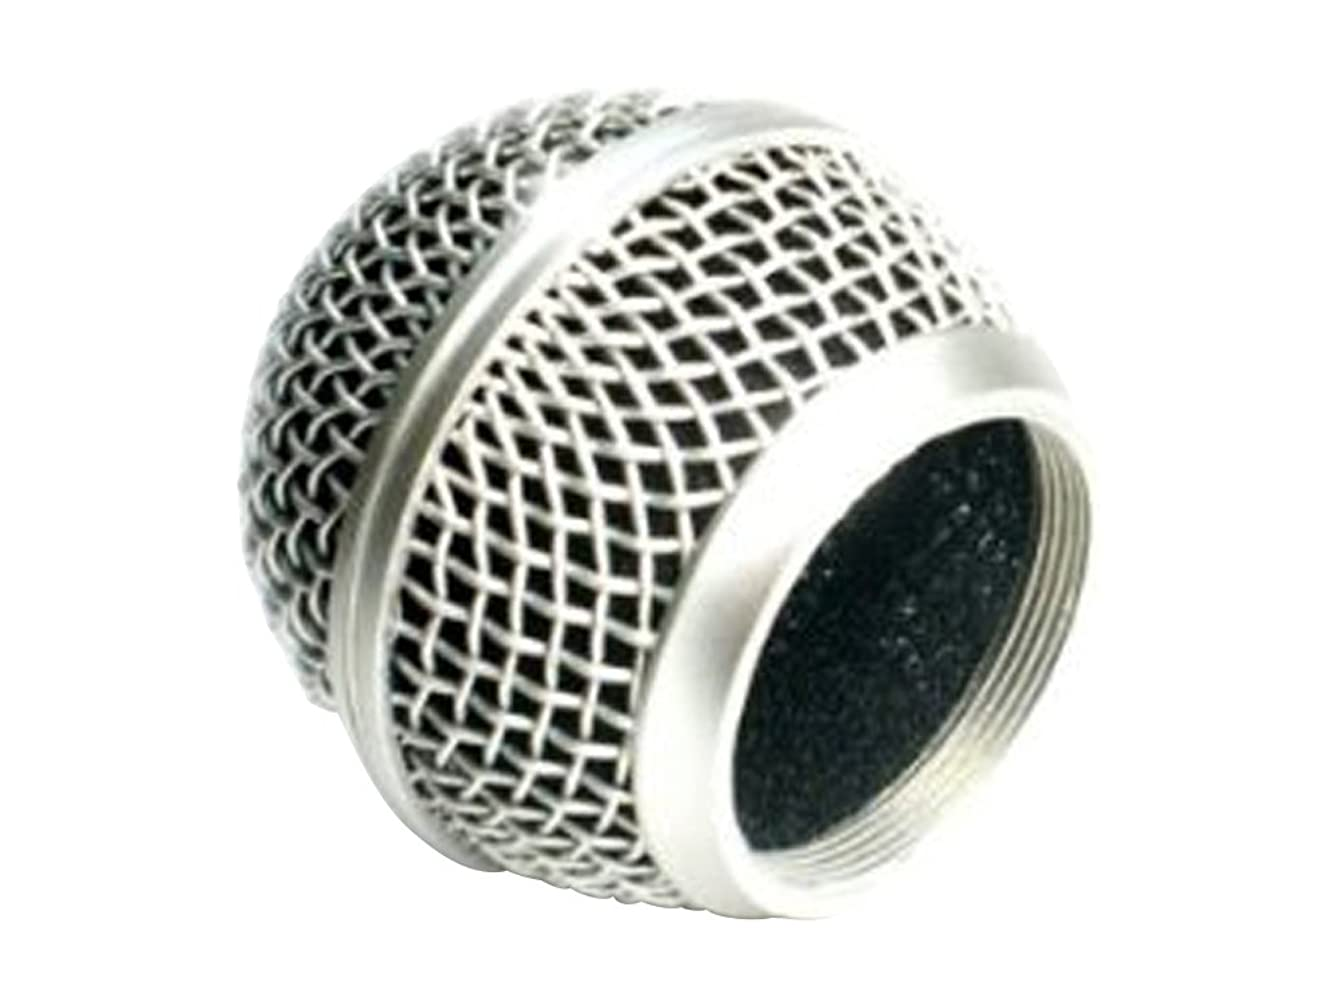 Performance Plus MB58S-C Mic Wire Mesh Replacement Ball Grill for Shure SM58, Bright Chrome ejujkk321013